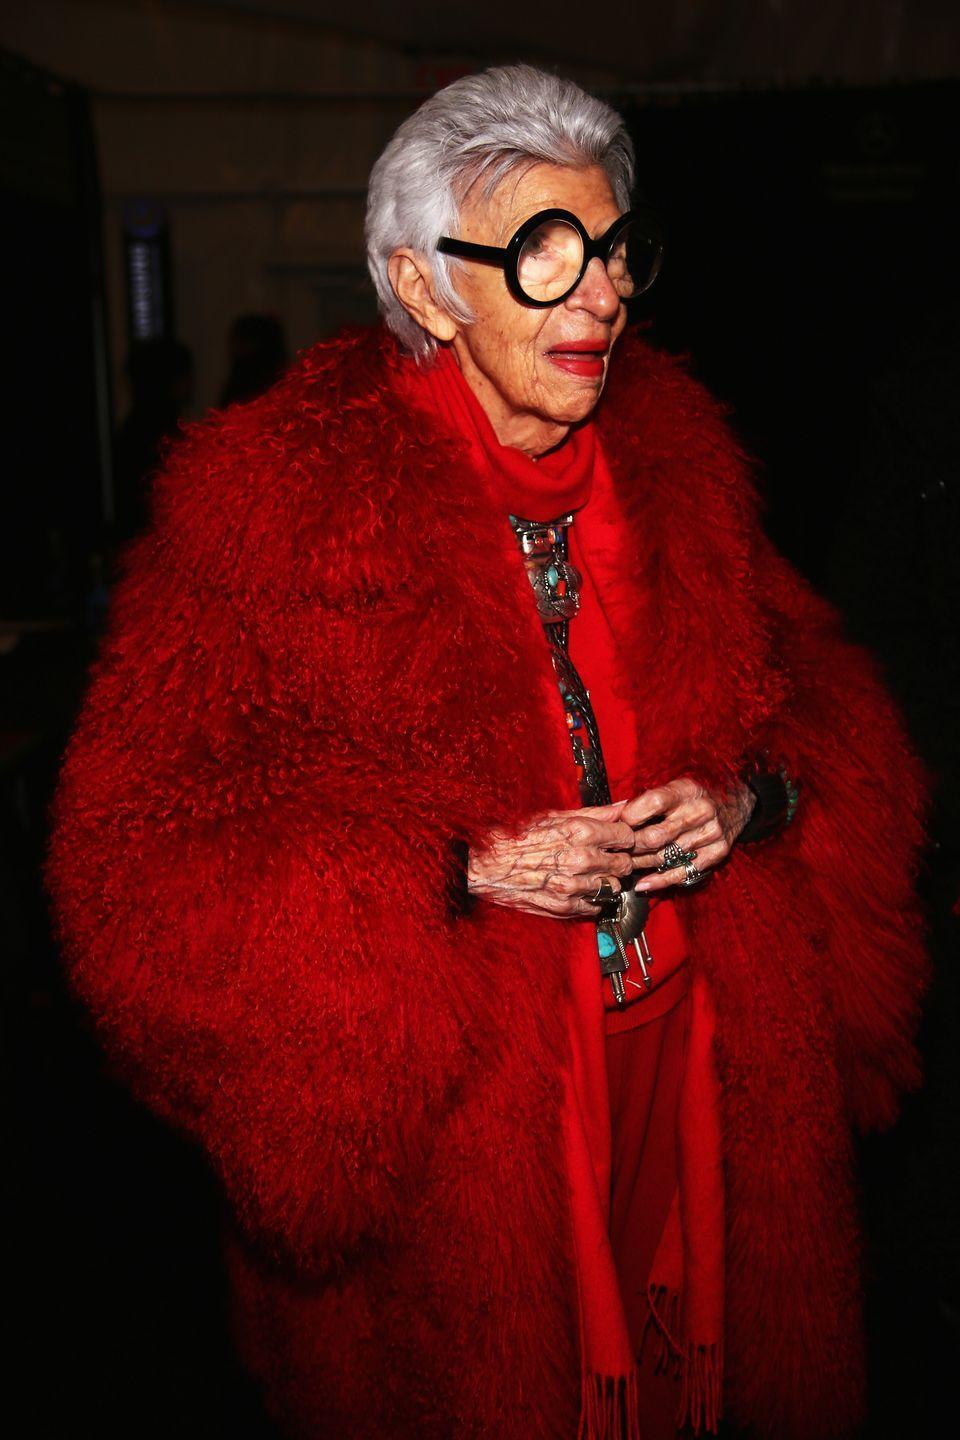 <p>A vision in red: the fashion maven arrives to the Ralph Rucci fashion show wearing a blood red ensemble paired with Southwestern silver and turquoise jewelry. <br></p>